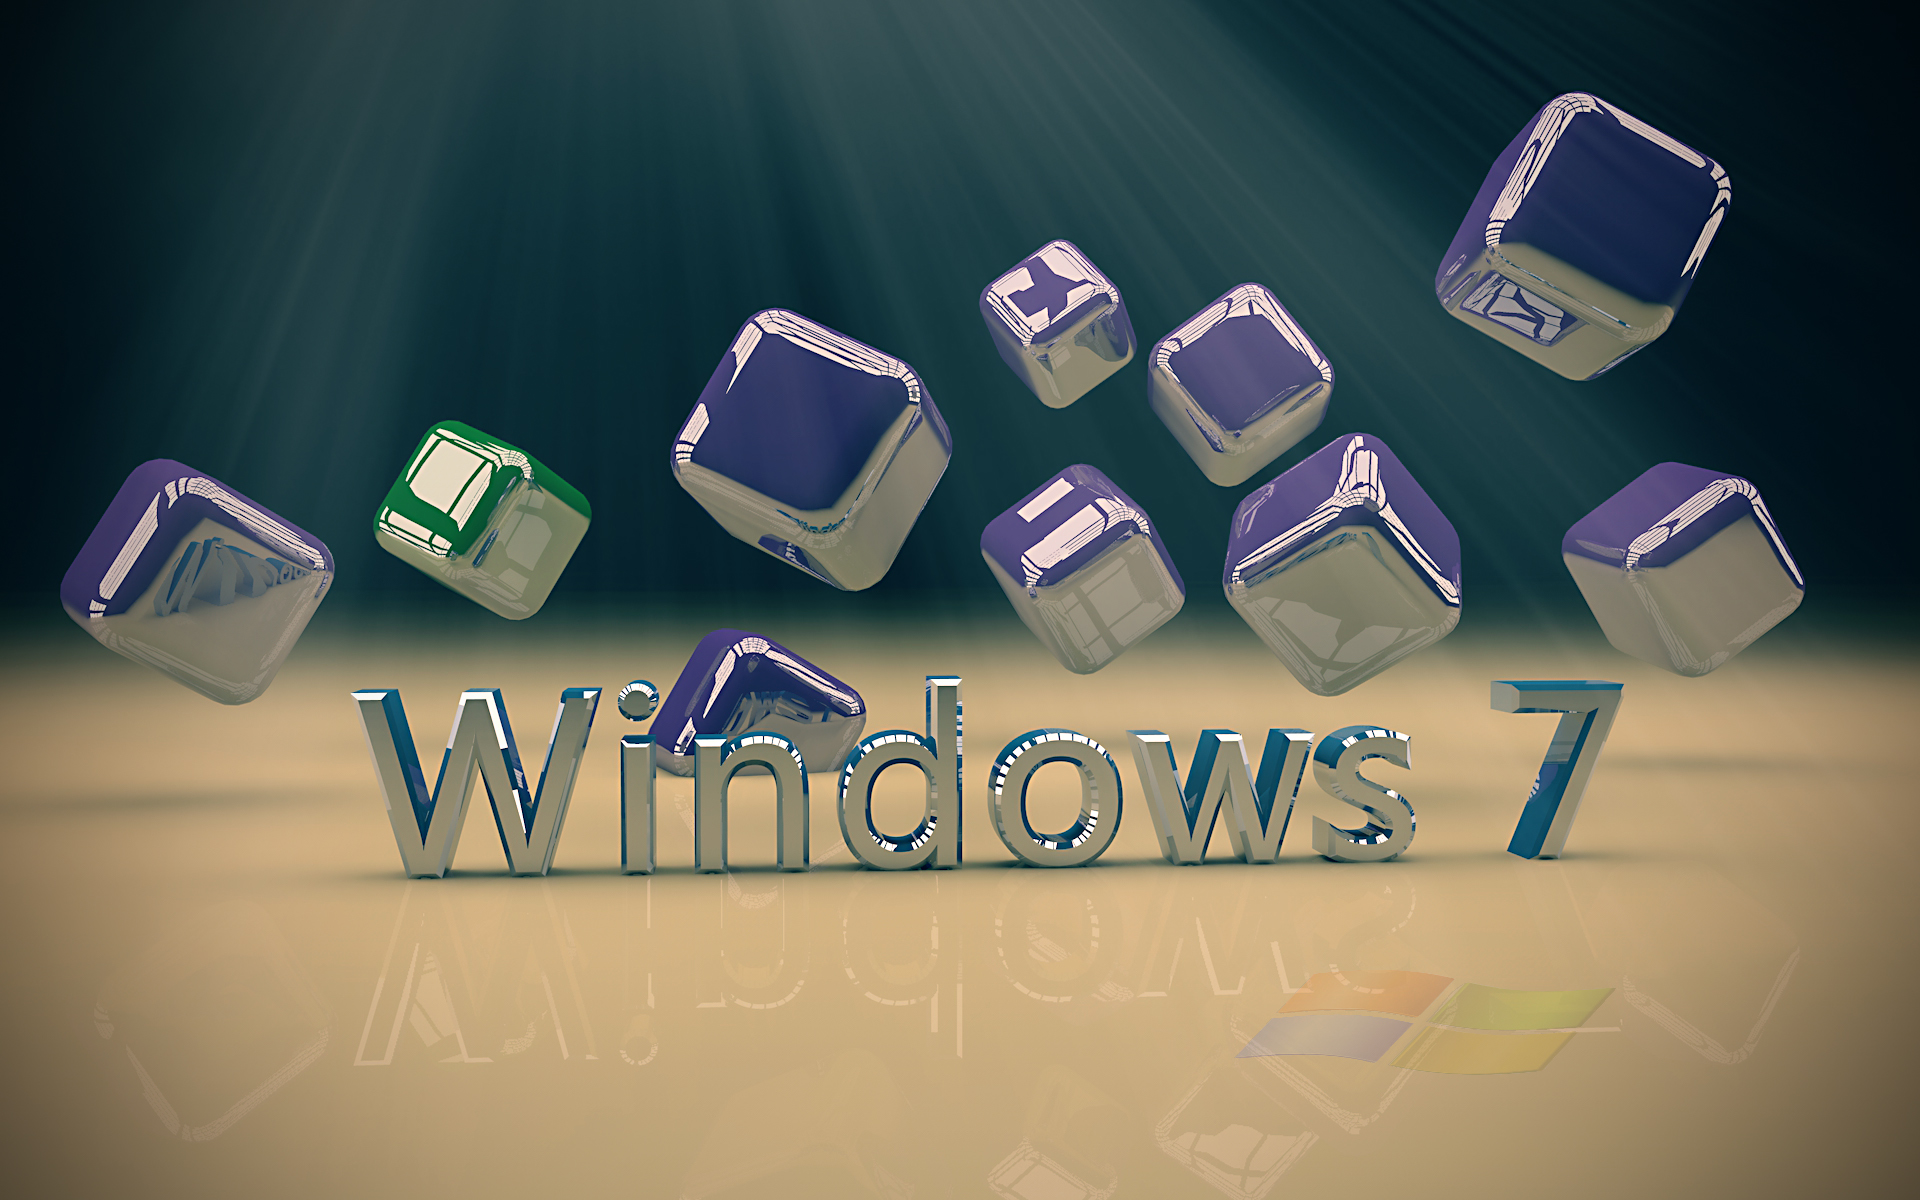 windows 7 hd wallpaper background image 1920x1200 id 502191